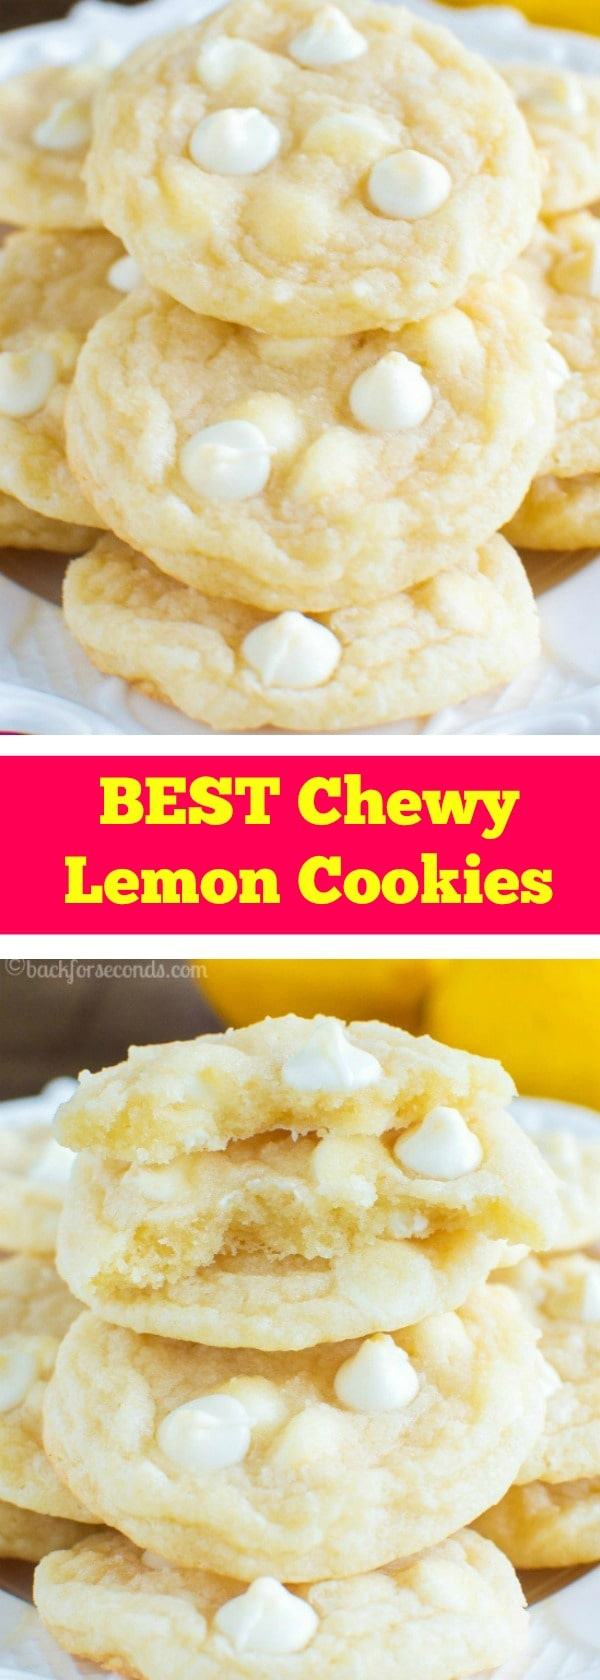 Best Chewy Lemon Cookies